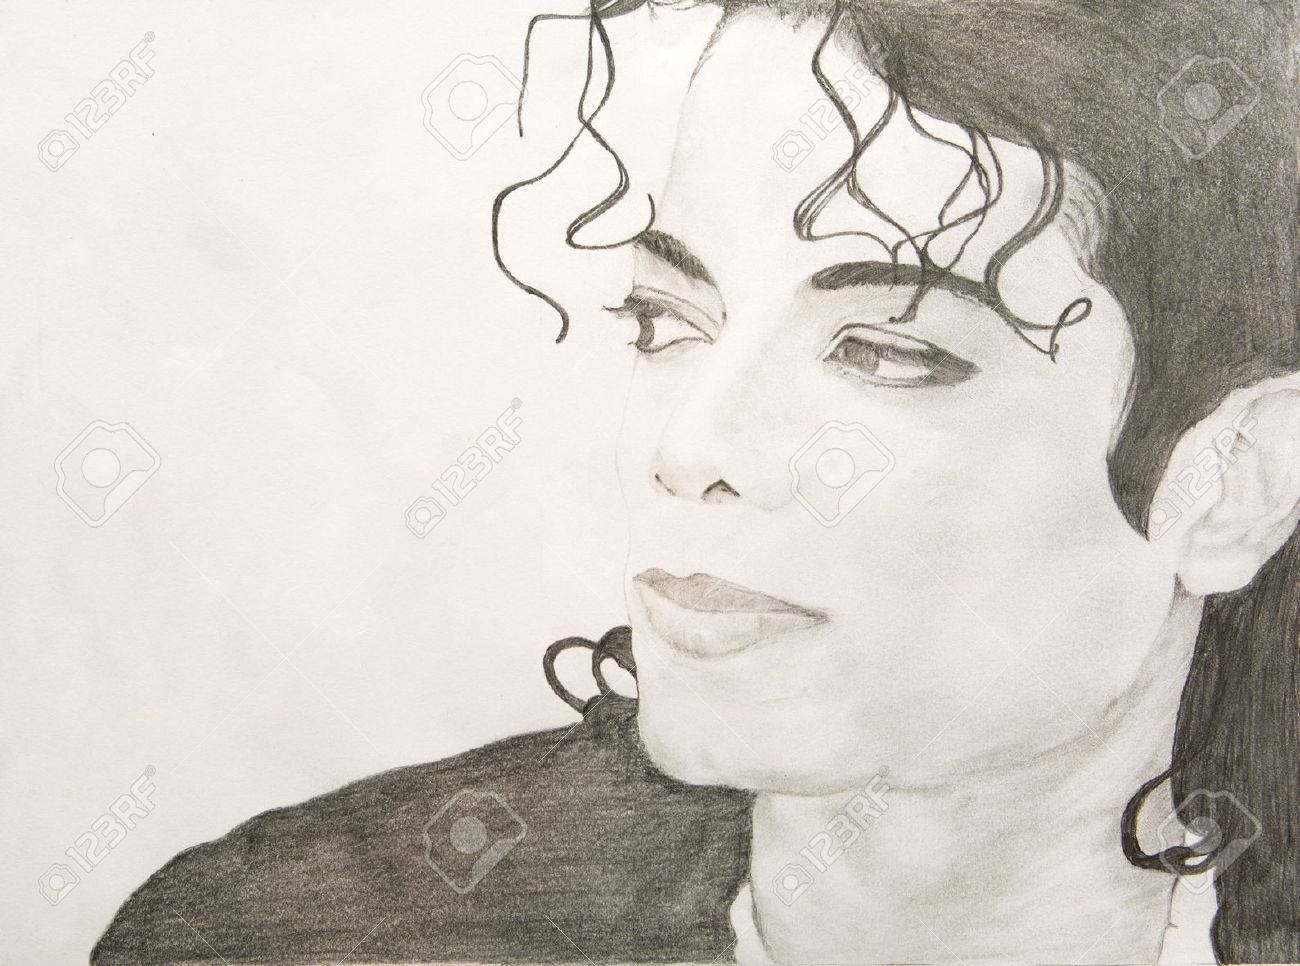 Michael jackson pencil sketch stock photo 35935787